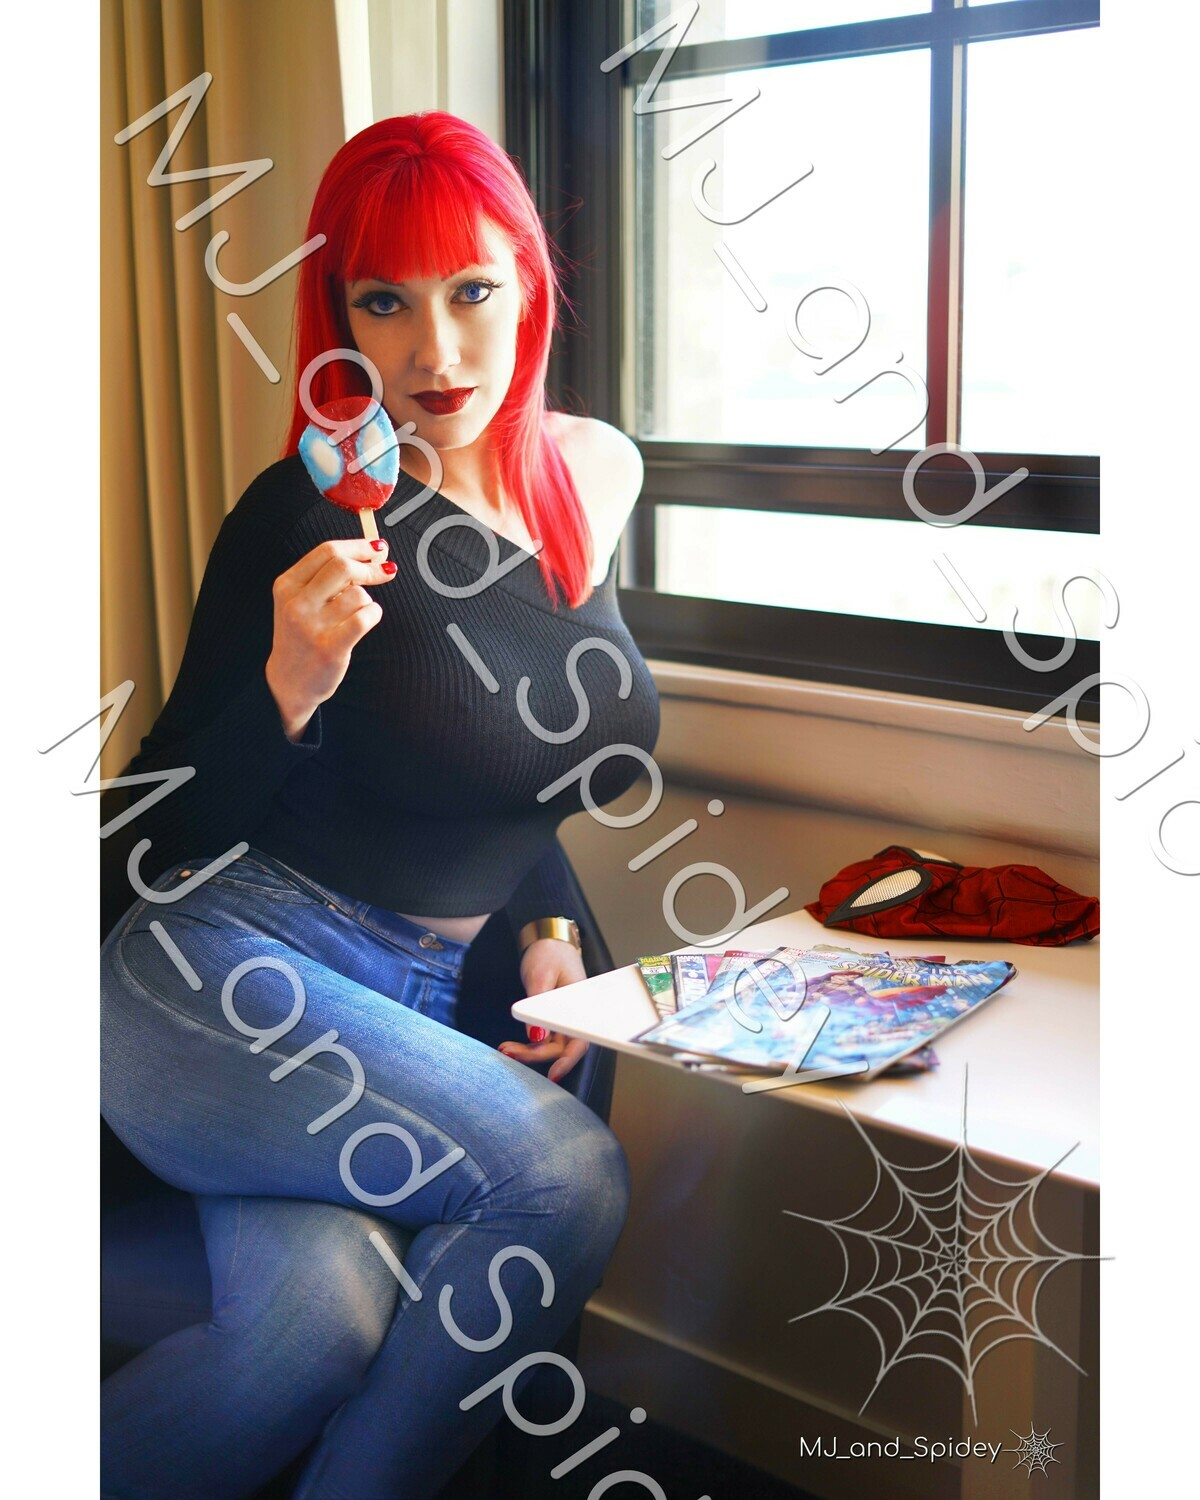 Marvel - Spider-Man - Mary Jane Watson - Popsicle No. 1 - Digital Cosplay Image (@MJ_and_Spidey, MJ and Spidey, Comics)